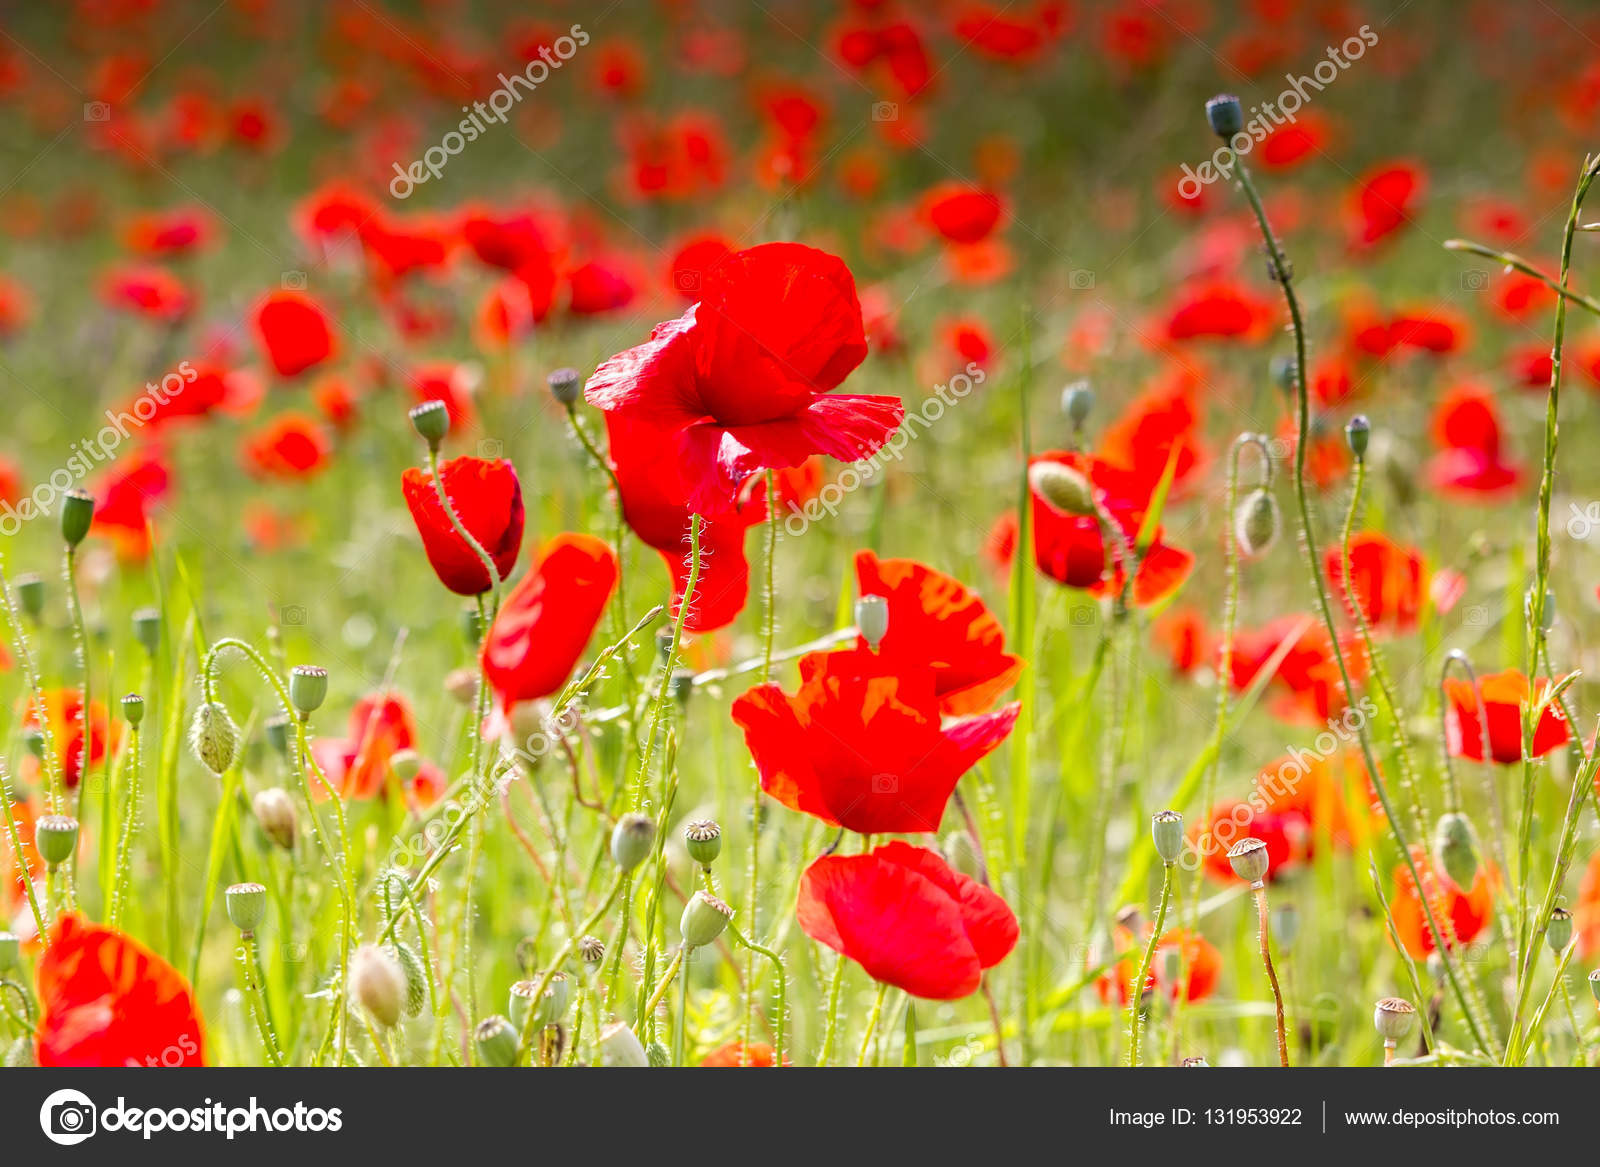 The Huge Field Of Red Poppies Flowers Stock Photo Vverve 131953922